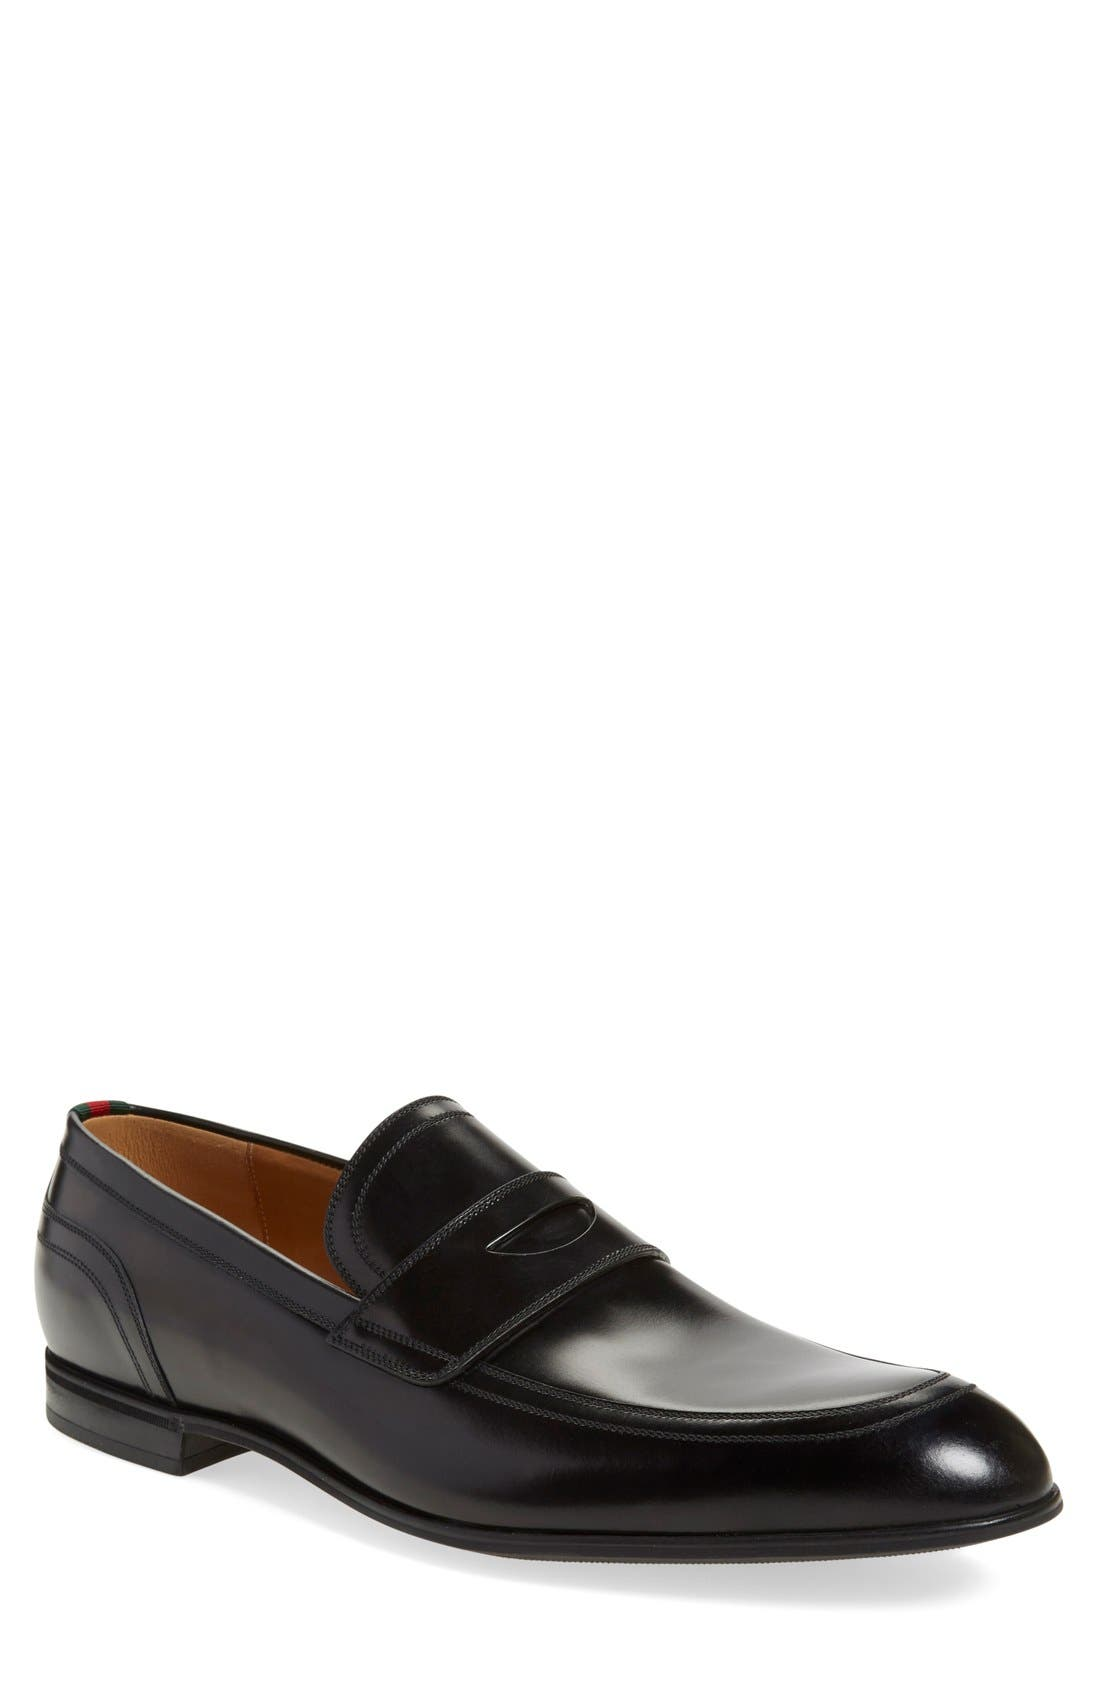 Ravello Penny Loafer,                         Main,                         color,